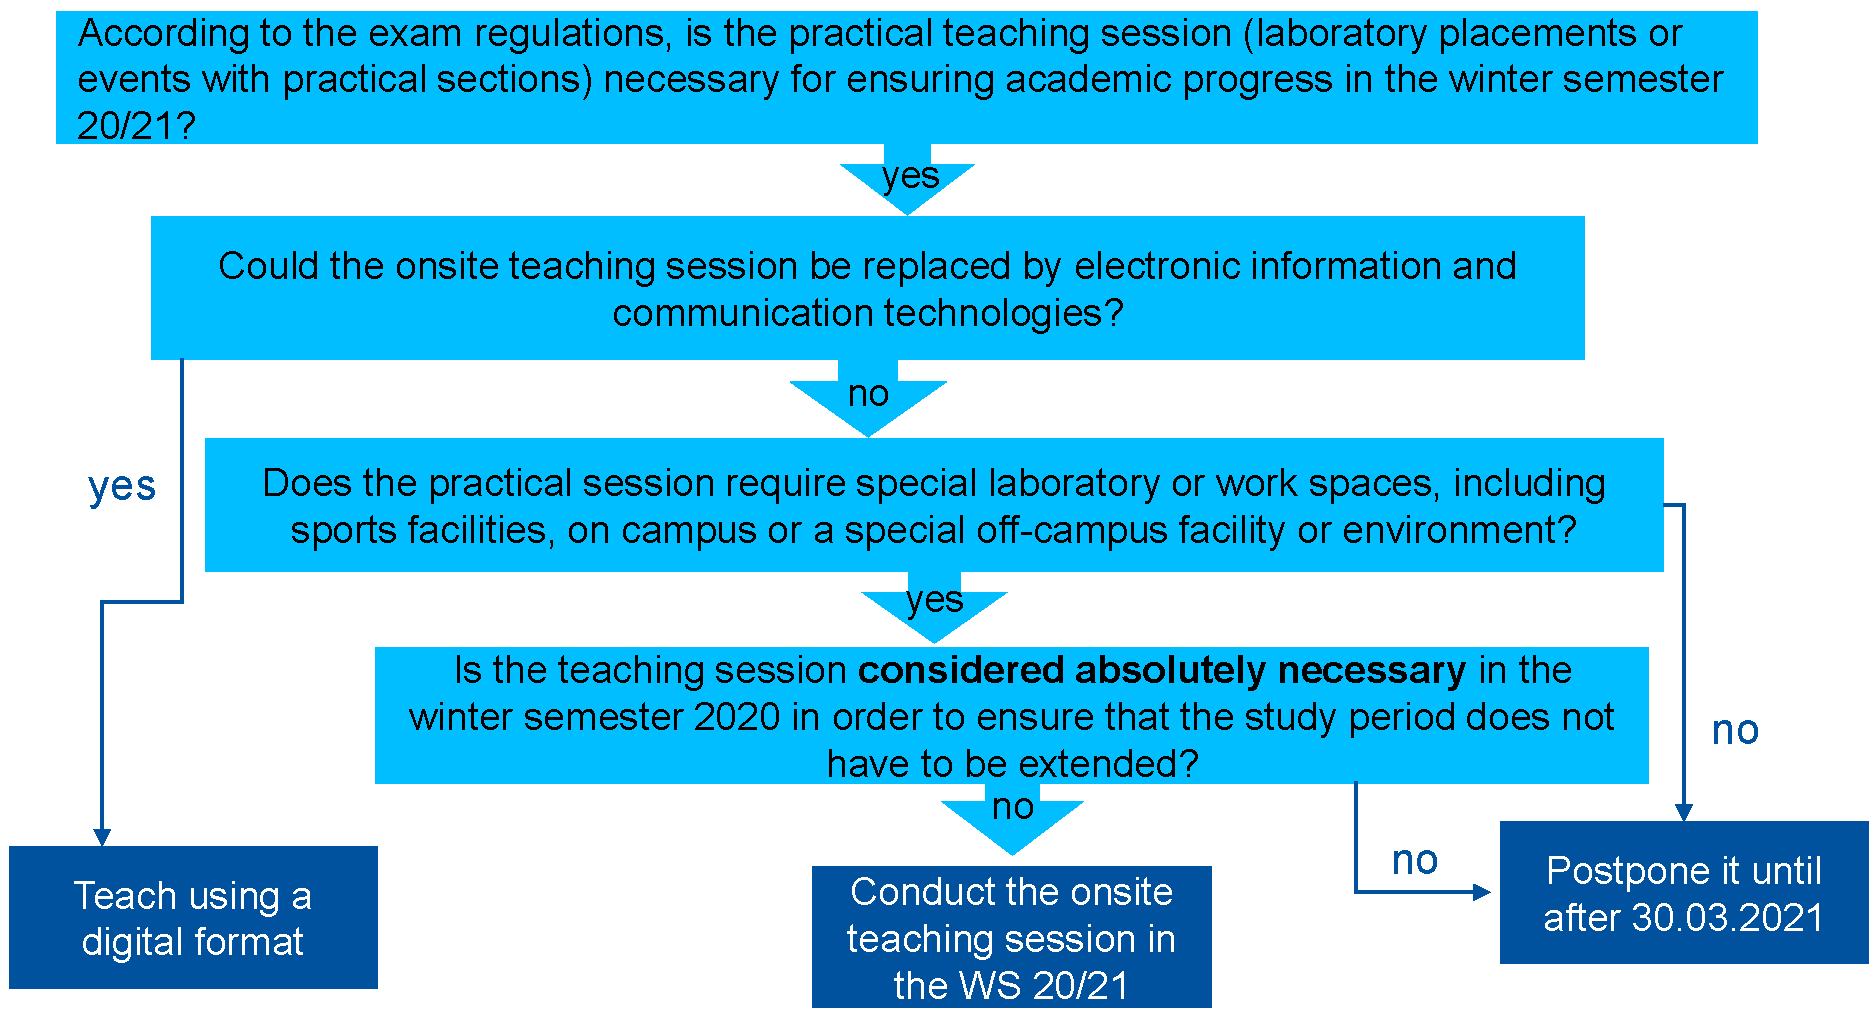 According to the exam regulations, is the practical teaching session (laboratory placements or events with practical sections) necessary for ensuring academic progress in the winter semester 20/21? Yes: Could the onsite teaching session be replaced by electronic information and communication technologies? Yes: Teach using a digital format. No: Does the practical session require special laboratory or work spaces, including sports facilities, on campus or a special off-campus facility or environment? No: Postpone it until after 30.03.2021. Yes: Is the teaching session considered absolutely necessary in the winter semester 2020 in order to ensure that the study period does not have to be extended? No: Postpone it until after 30.03.2021. Yes: Conduct the onsite teaching session in the WS 20/21